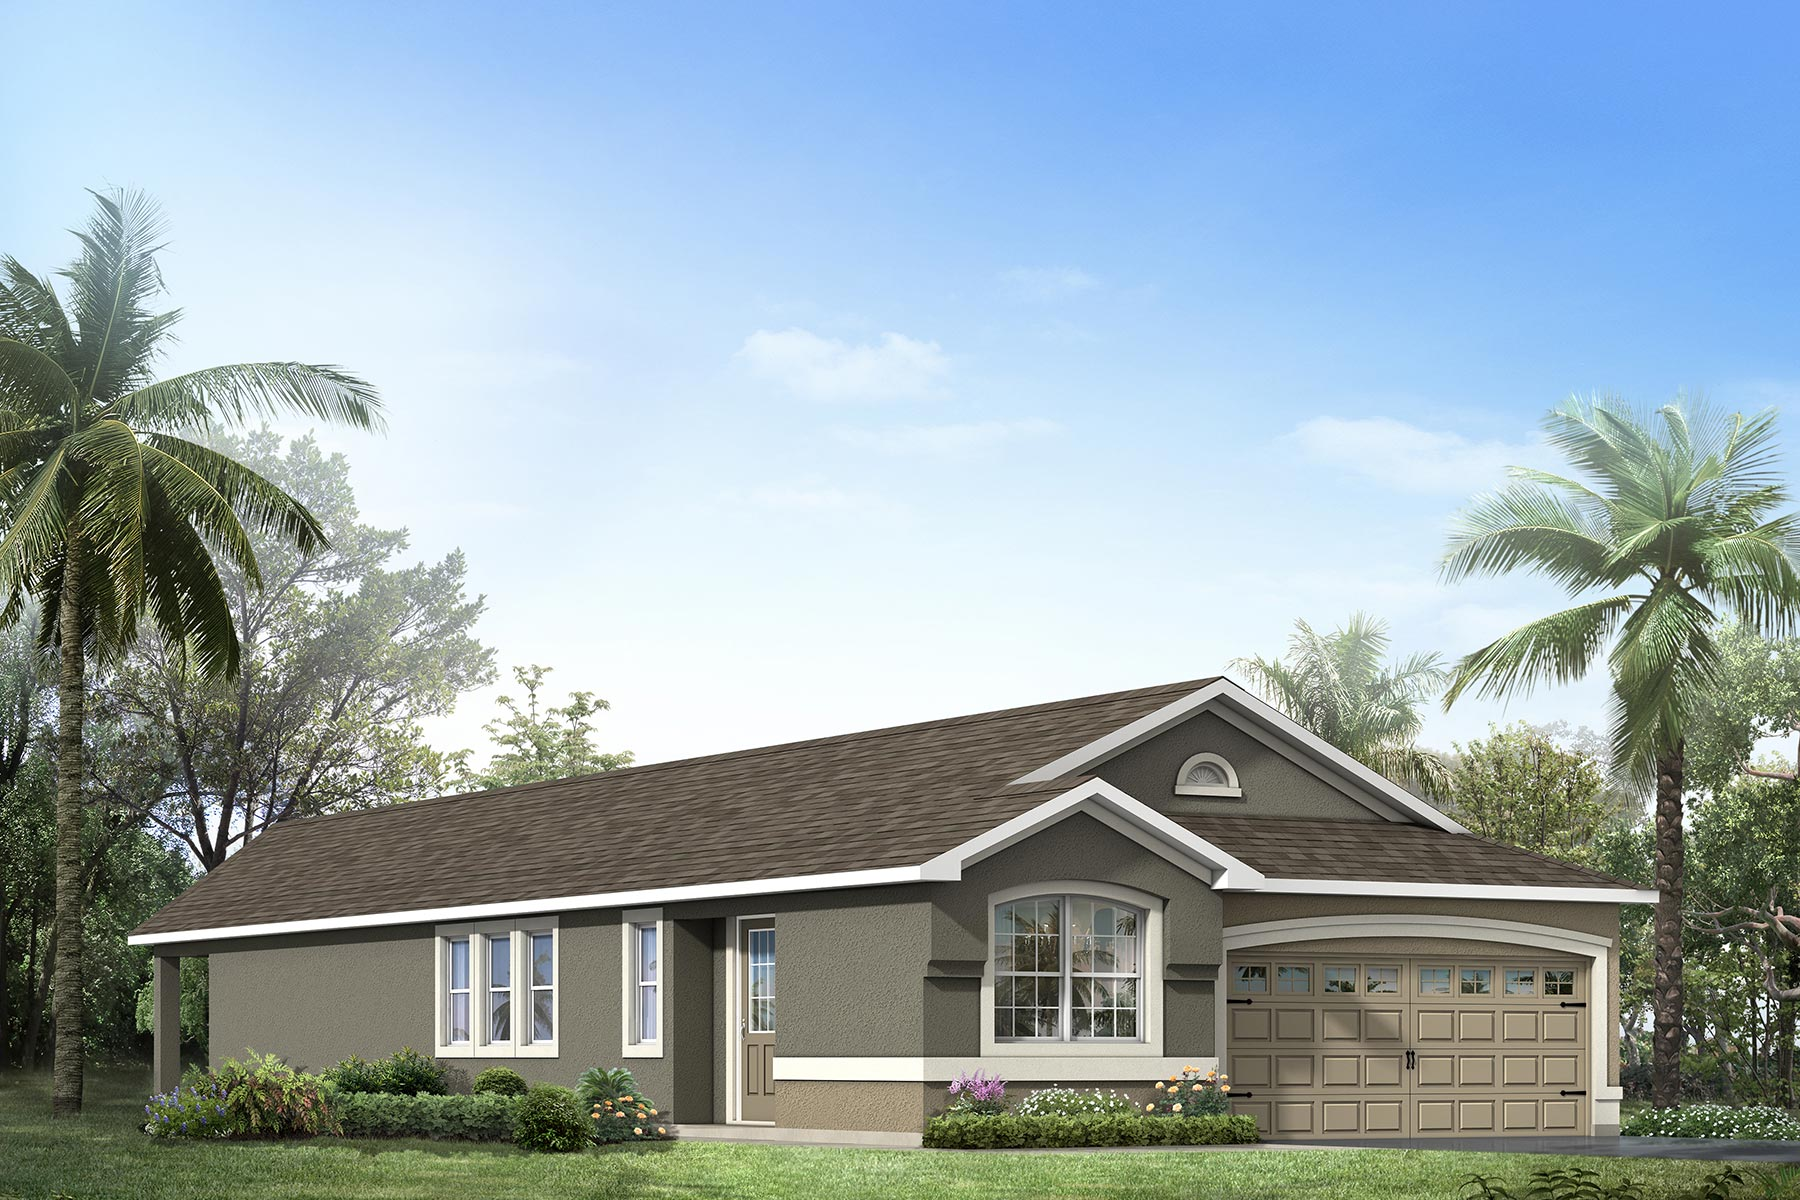 Gardenia Plan Elevation Front at Tapestry in Kissimmee Florida by Mattamy Homes